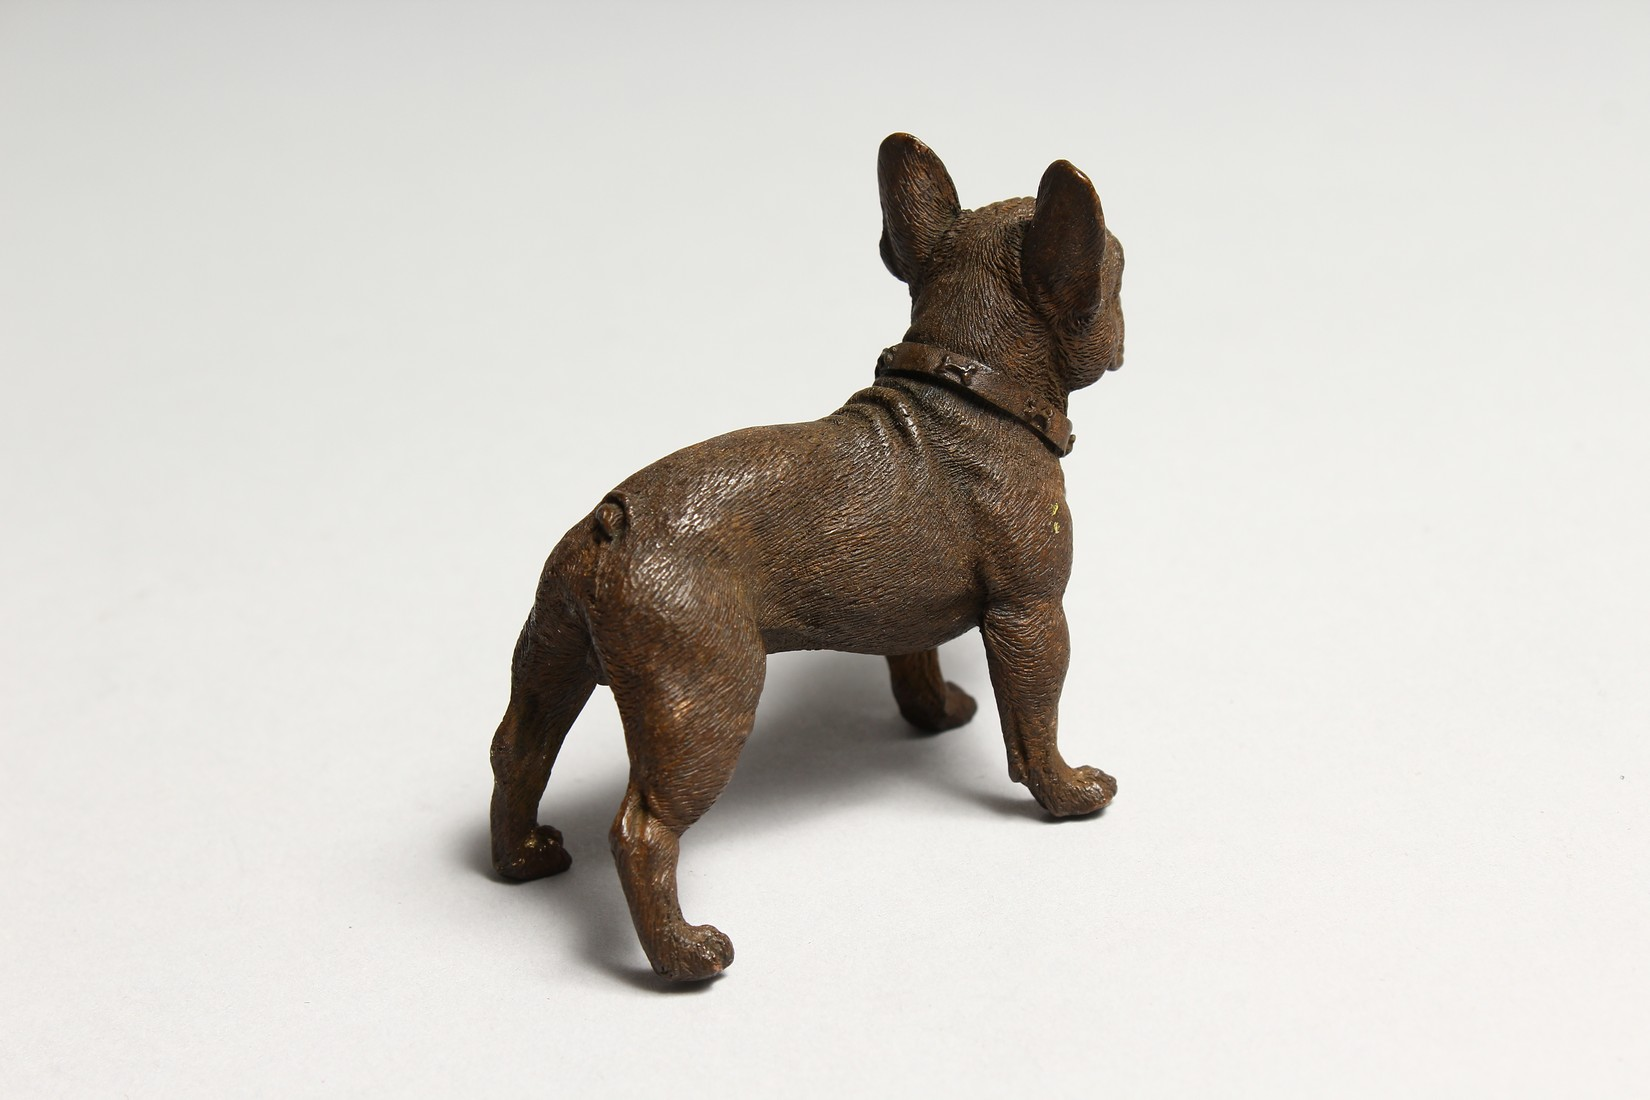 A BRONZE FRENCH BULLDOG - Image 2 of 2